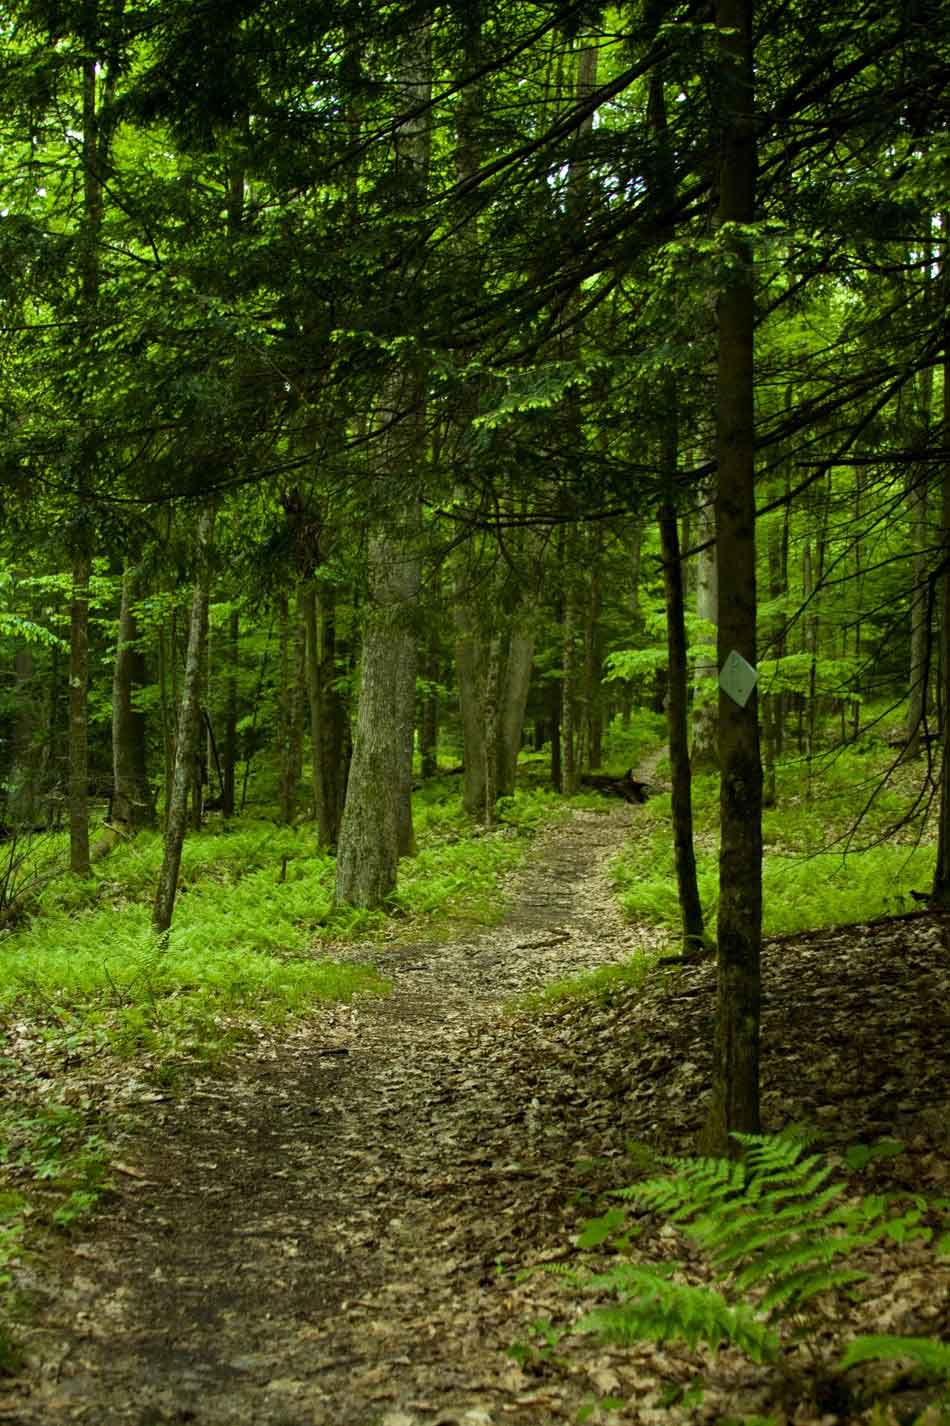 Morrison loop trail in the Allegheny National Forest